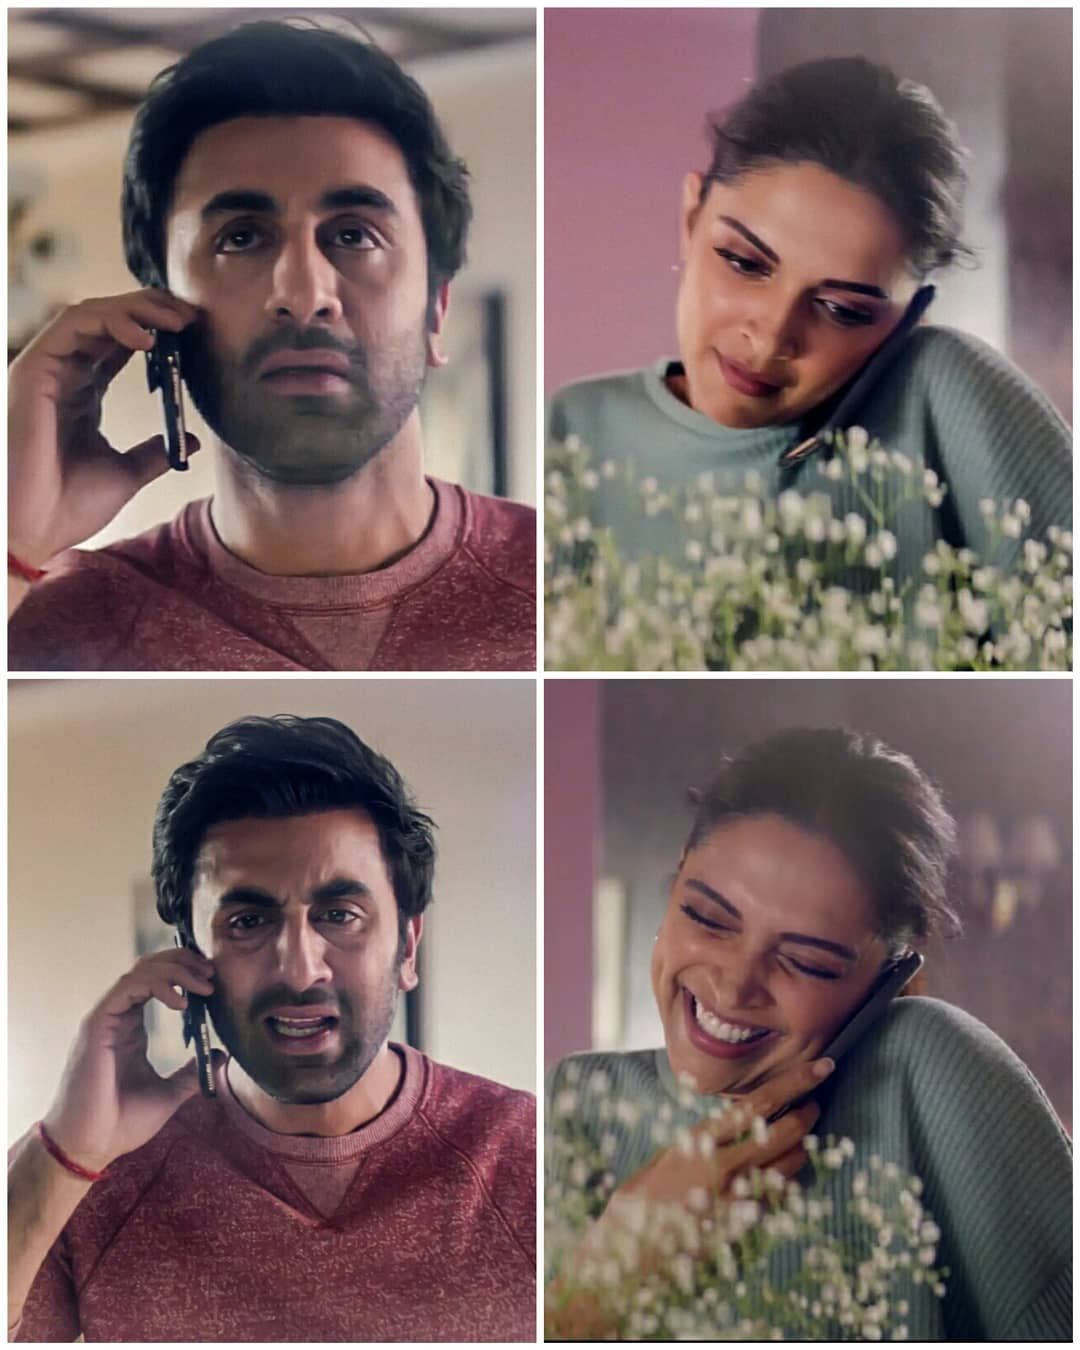 This Latest Ad Featuring Ex Flames Deepika Padukone And Ranbir Kapoor Is Just Too Adorable Hungryboo In 2020 Ranbir Kapoor Deepika Padukone Adorable